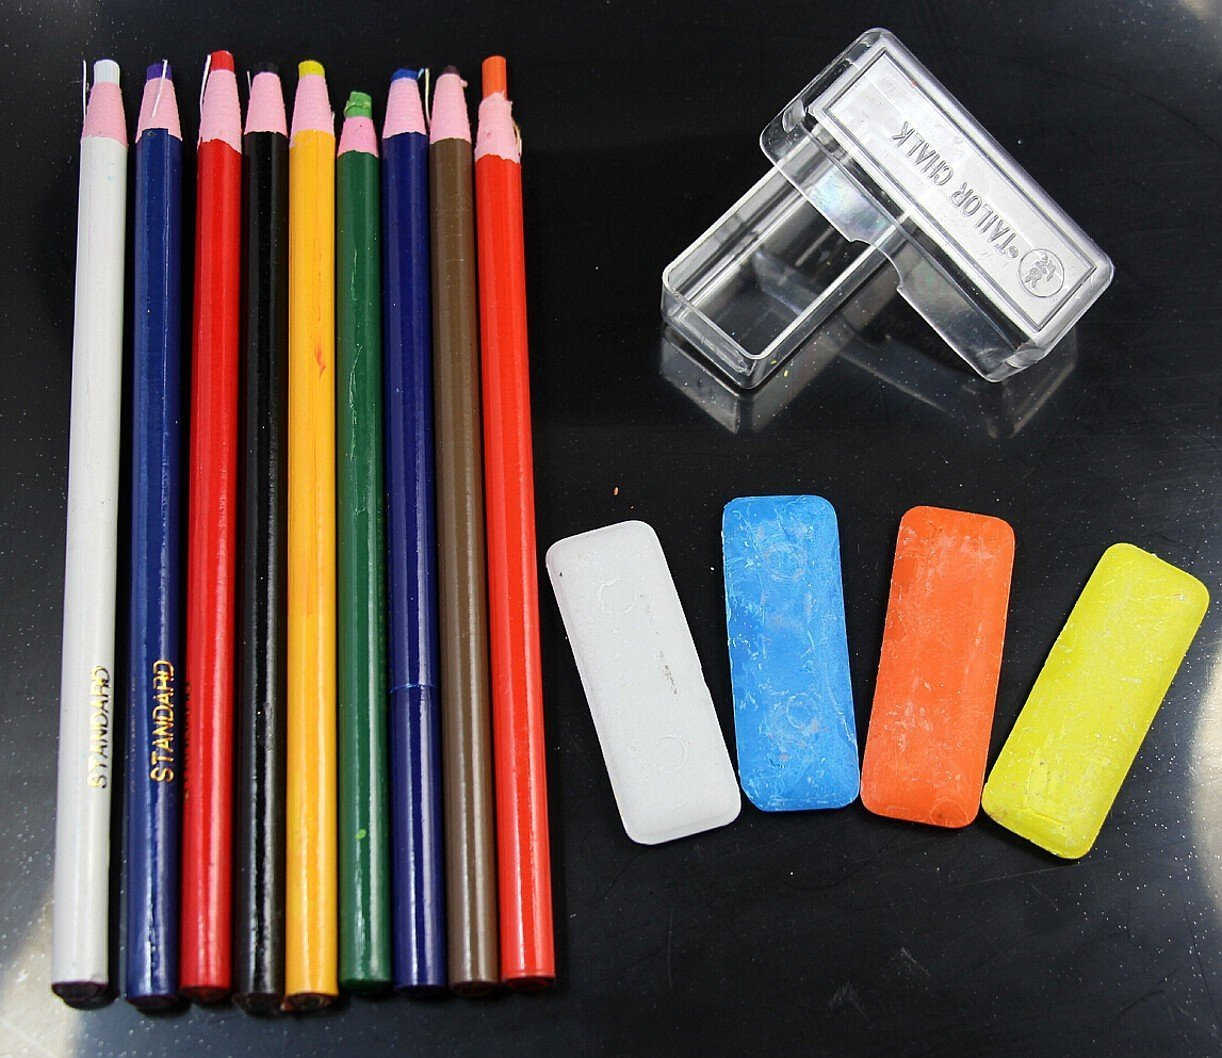 CHENGYIDA 10 color Peel-off Glass/metal/ wood/China Marker Marking pencil Grease Pencils + 4 Mini Tailor's Chalk Ltd.